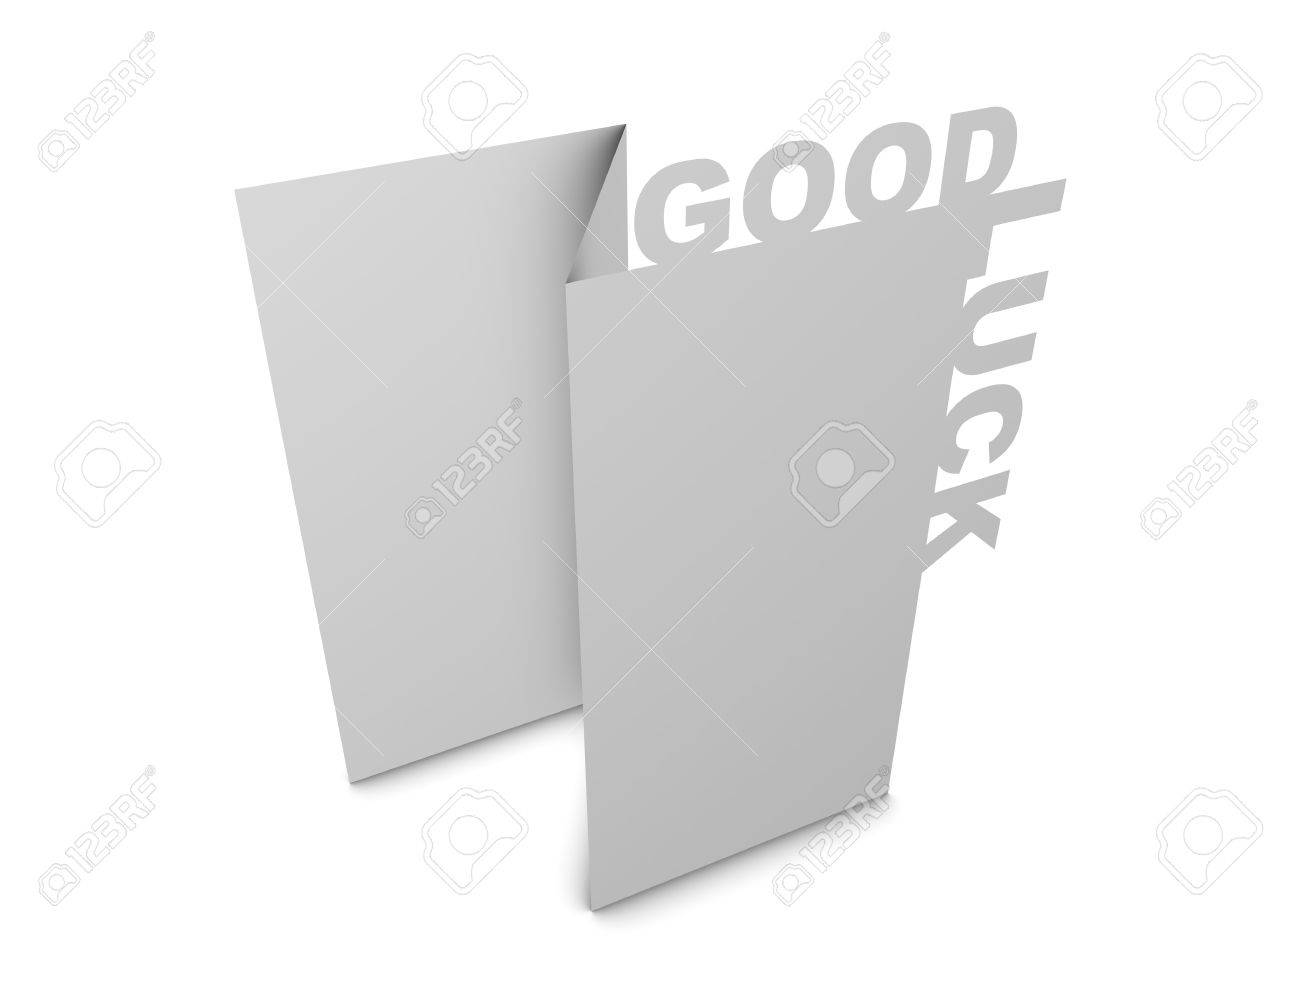 3d rendering, design element, Greeting card creative concept, isolated. Stock Photo - 11742584